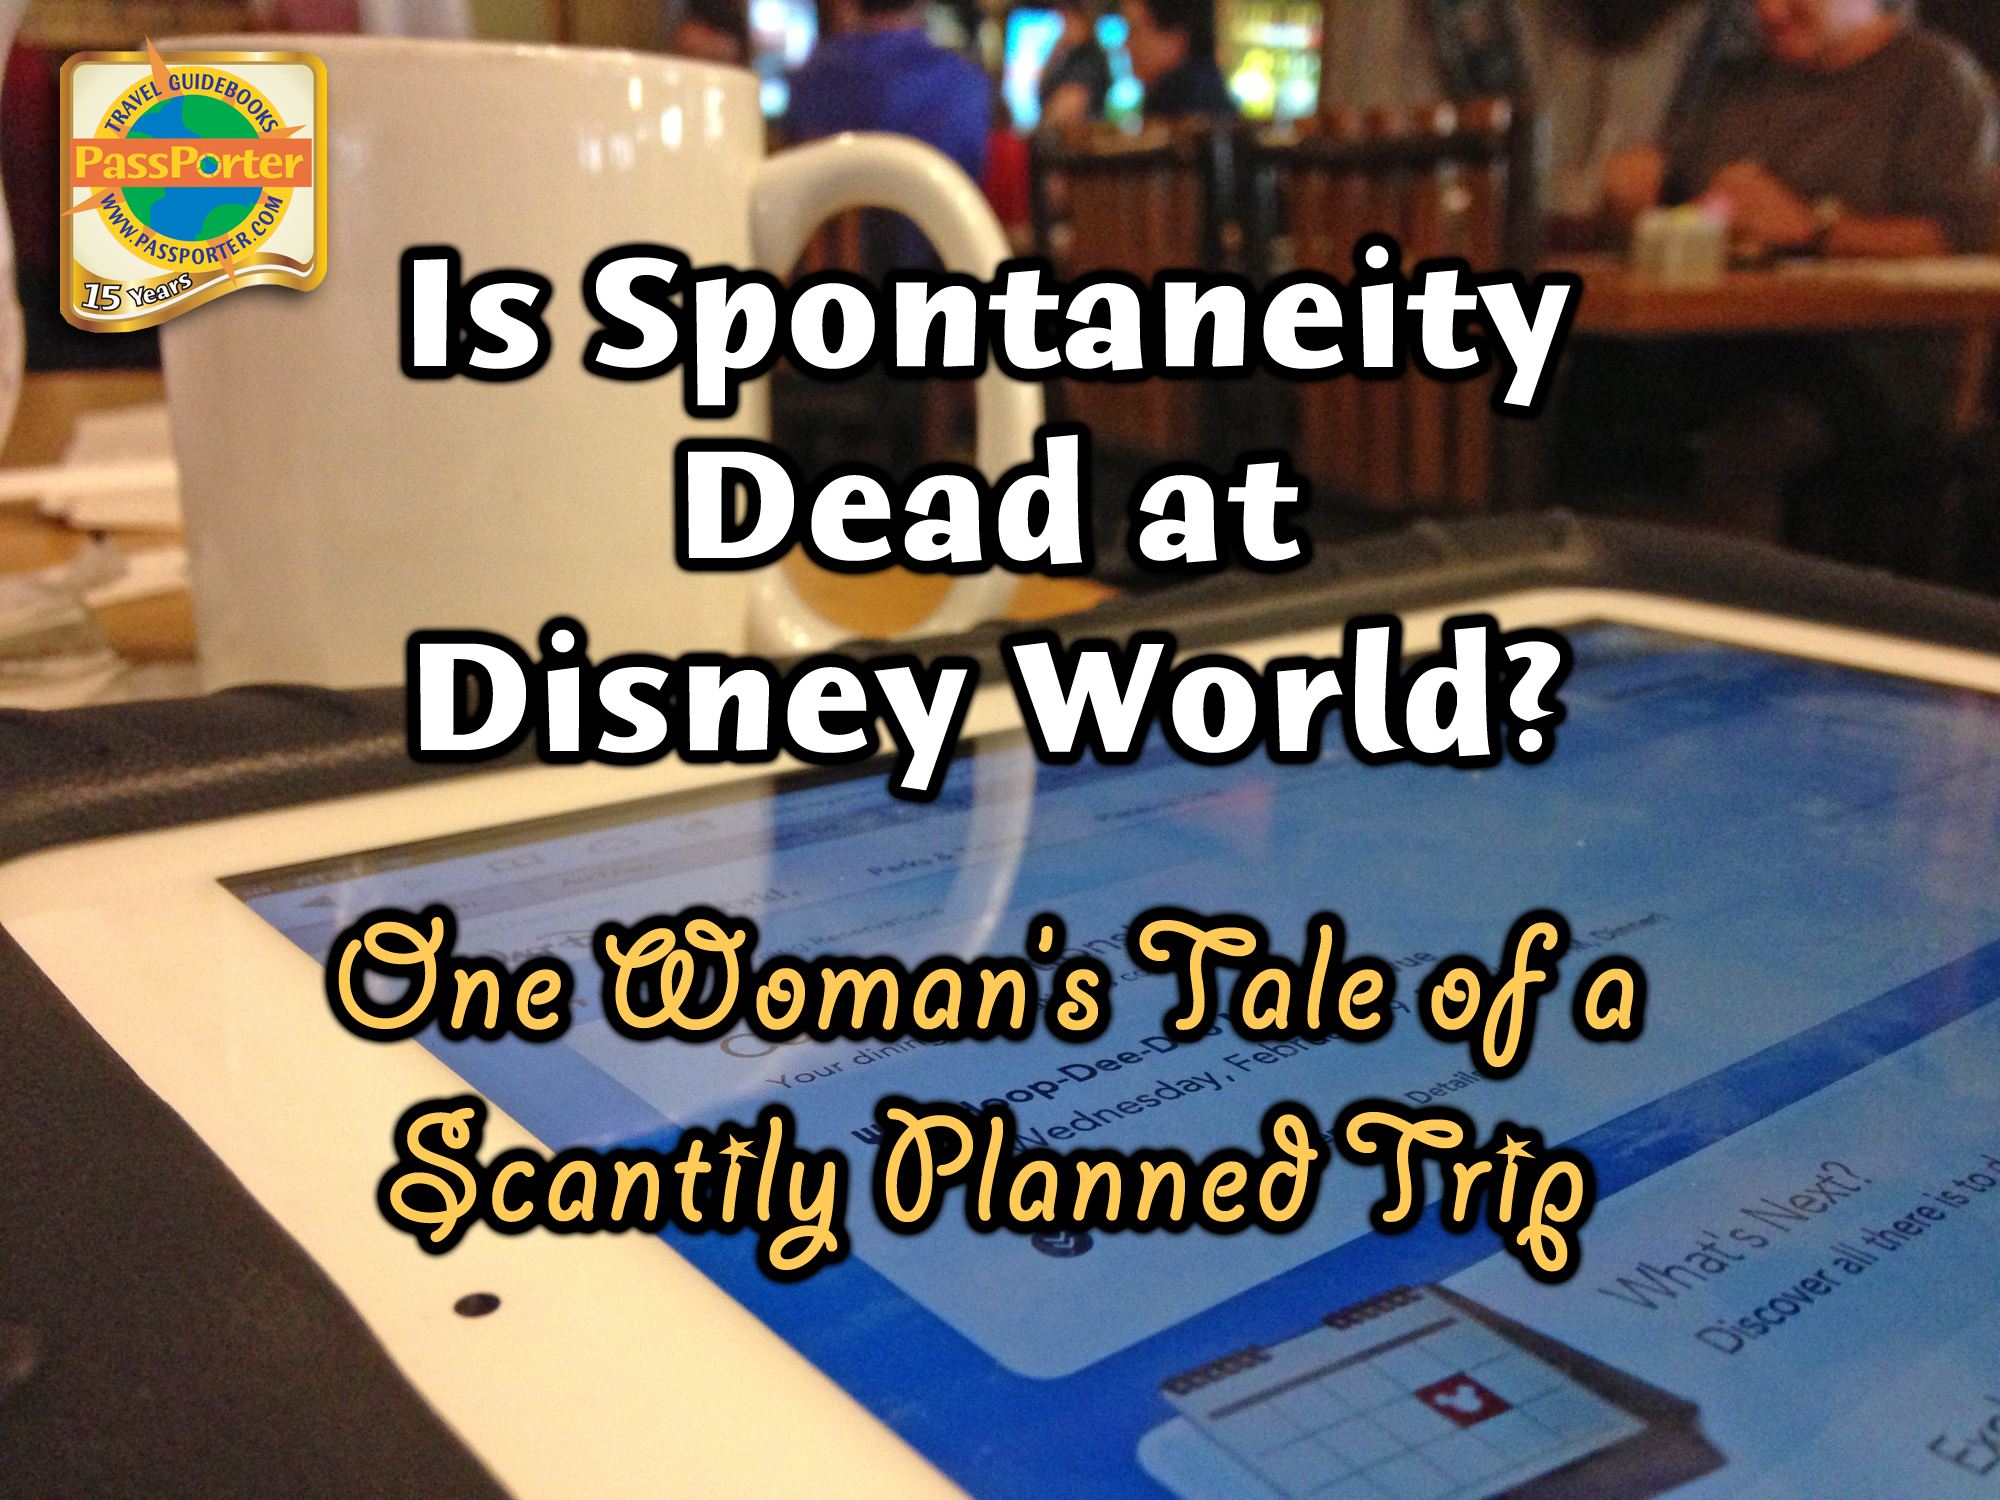 Photo illustrating spontaneity-at-disney